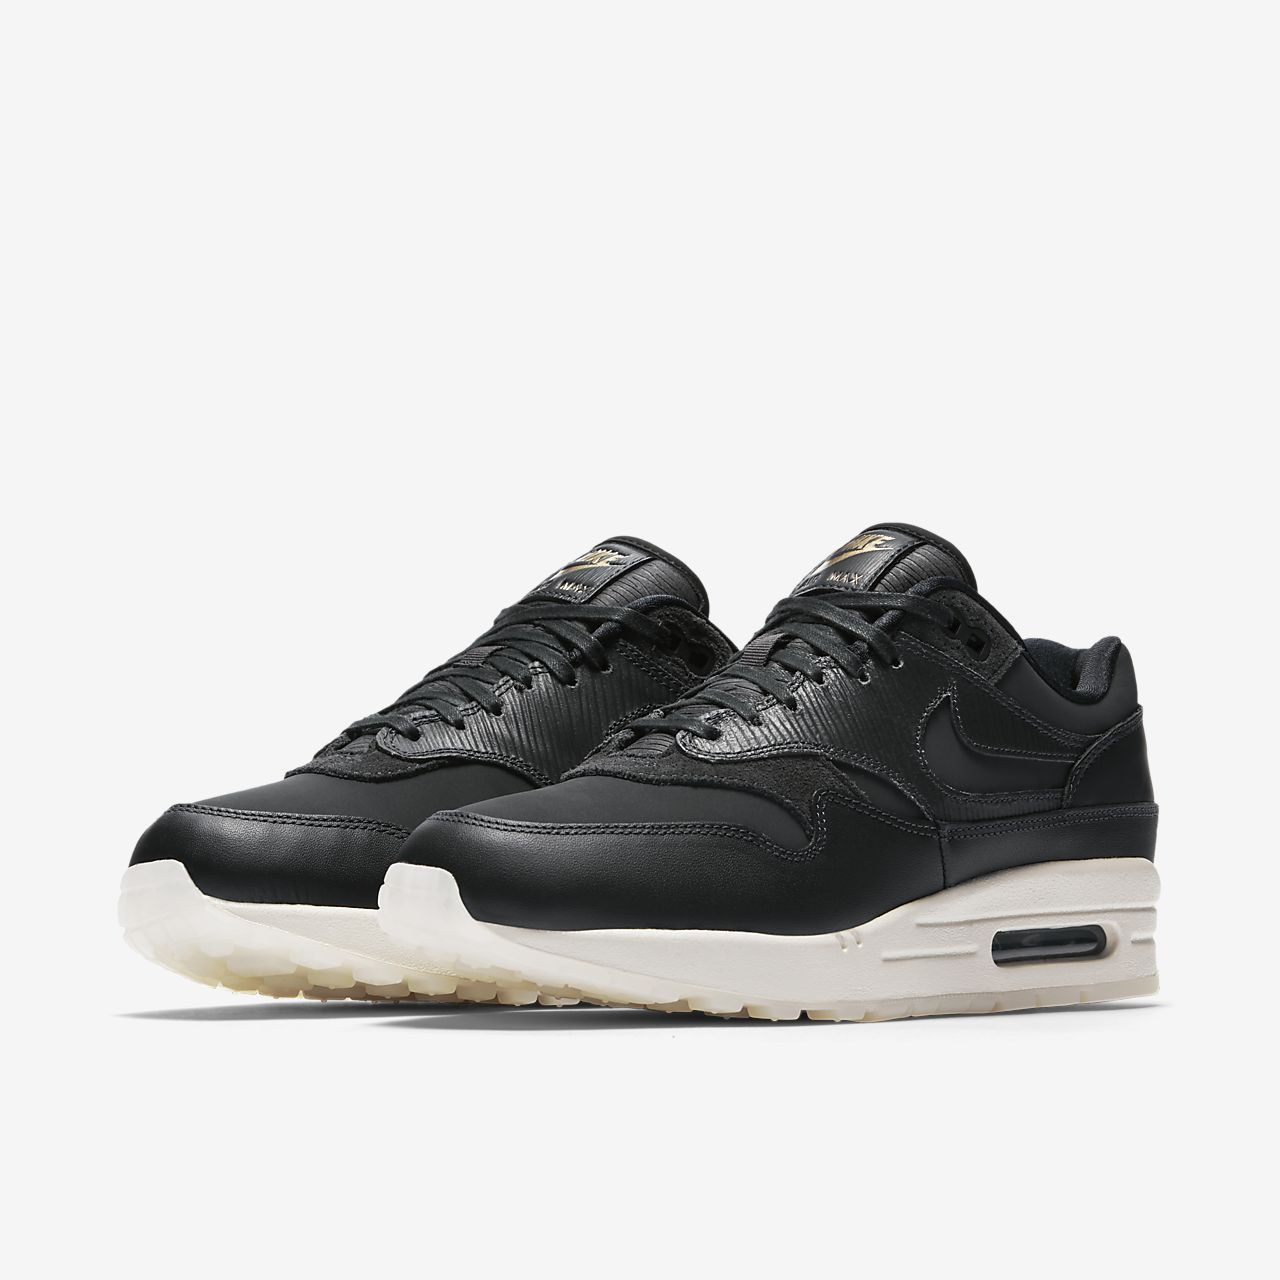 nike air max 1 black gum nz